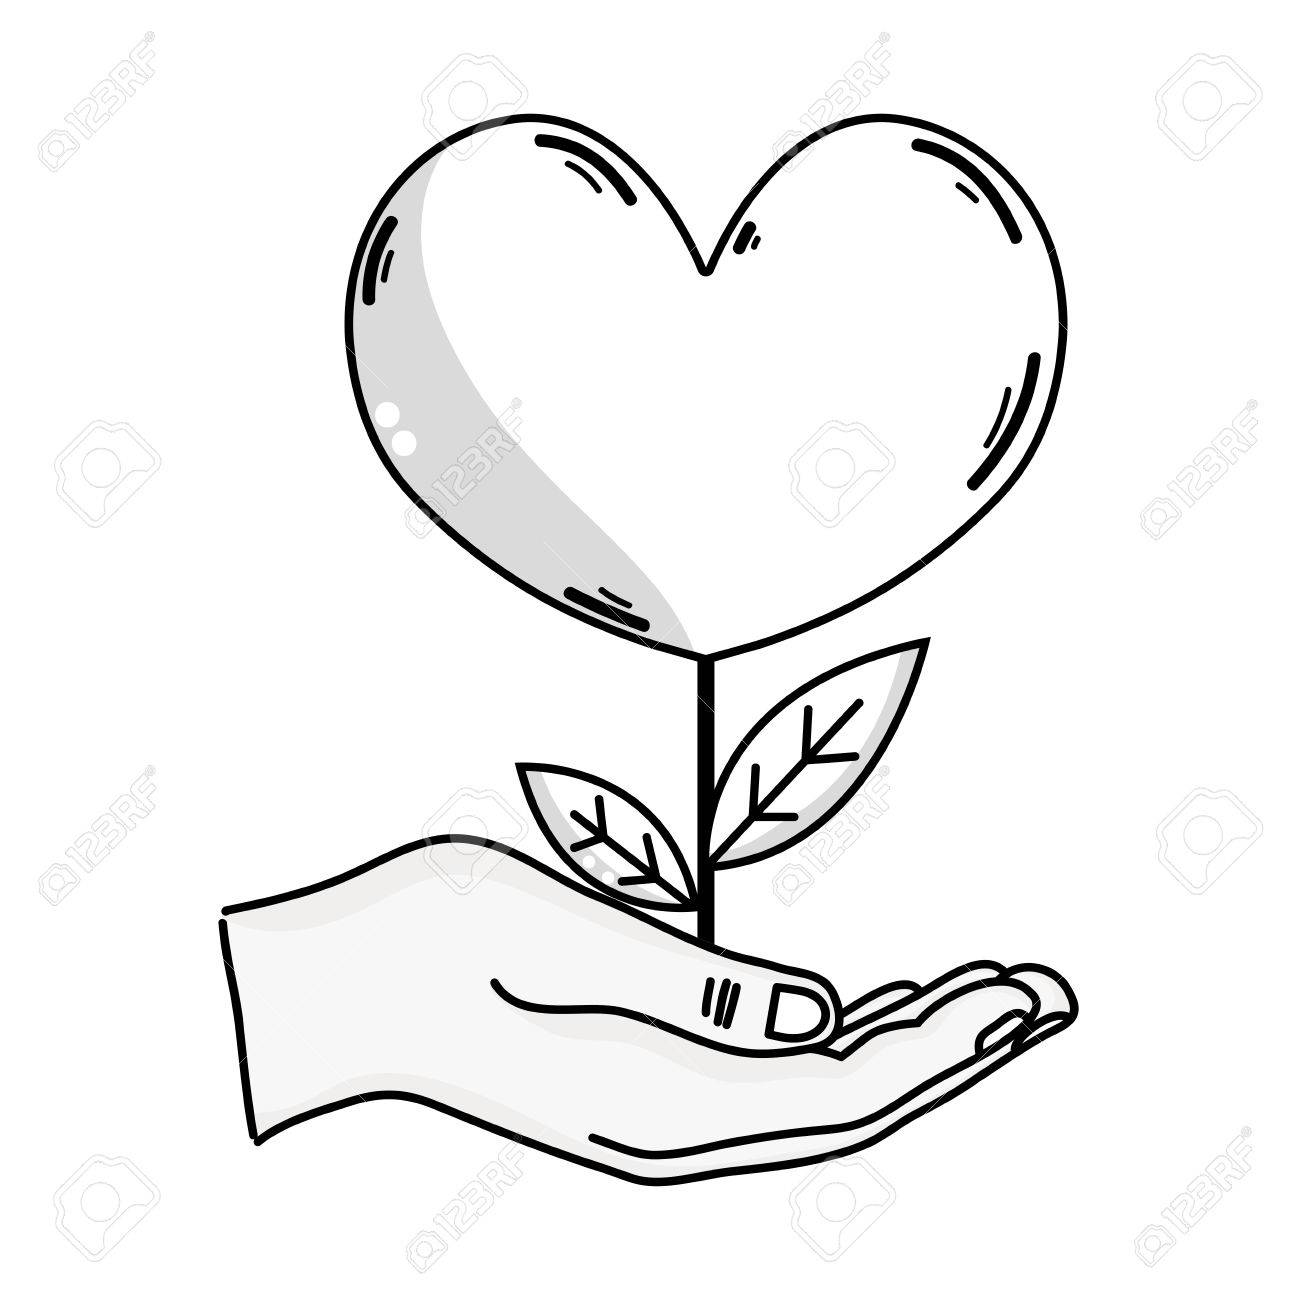 1300x1300 Outline Drawing Of Hand Holding Heart Shape Plant